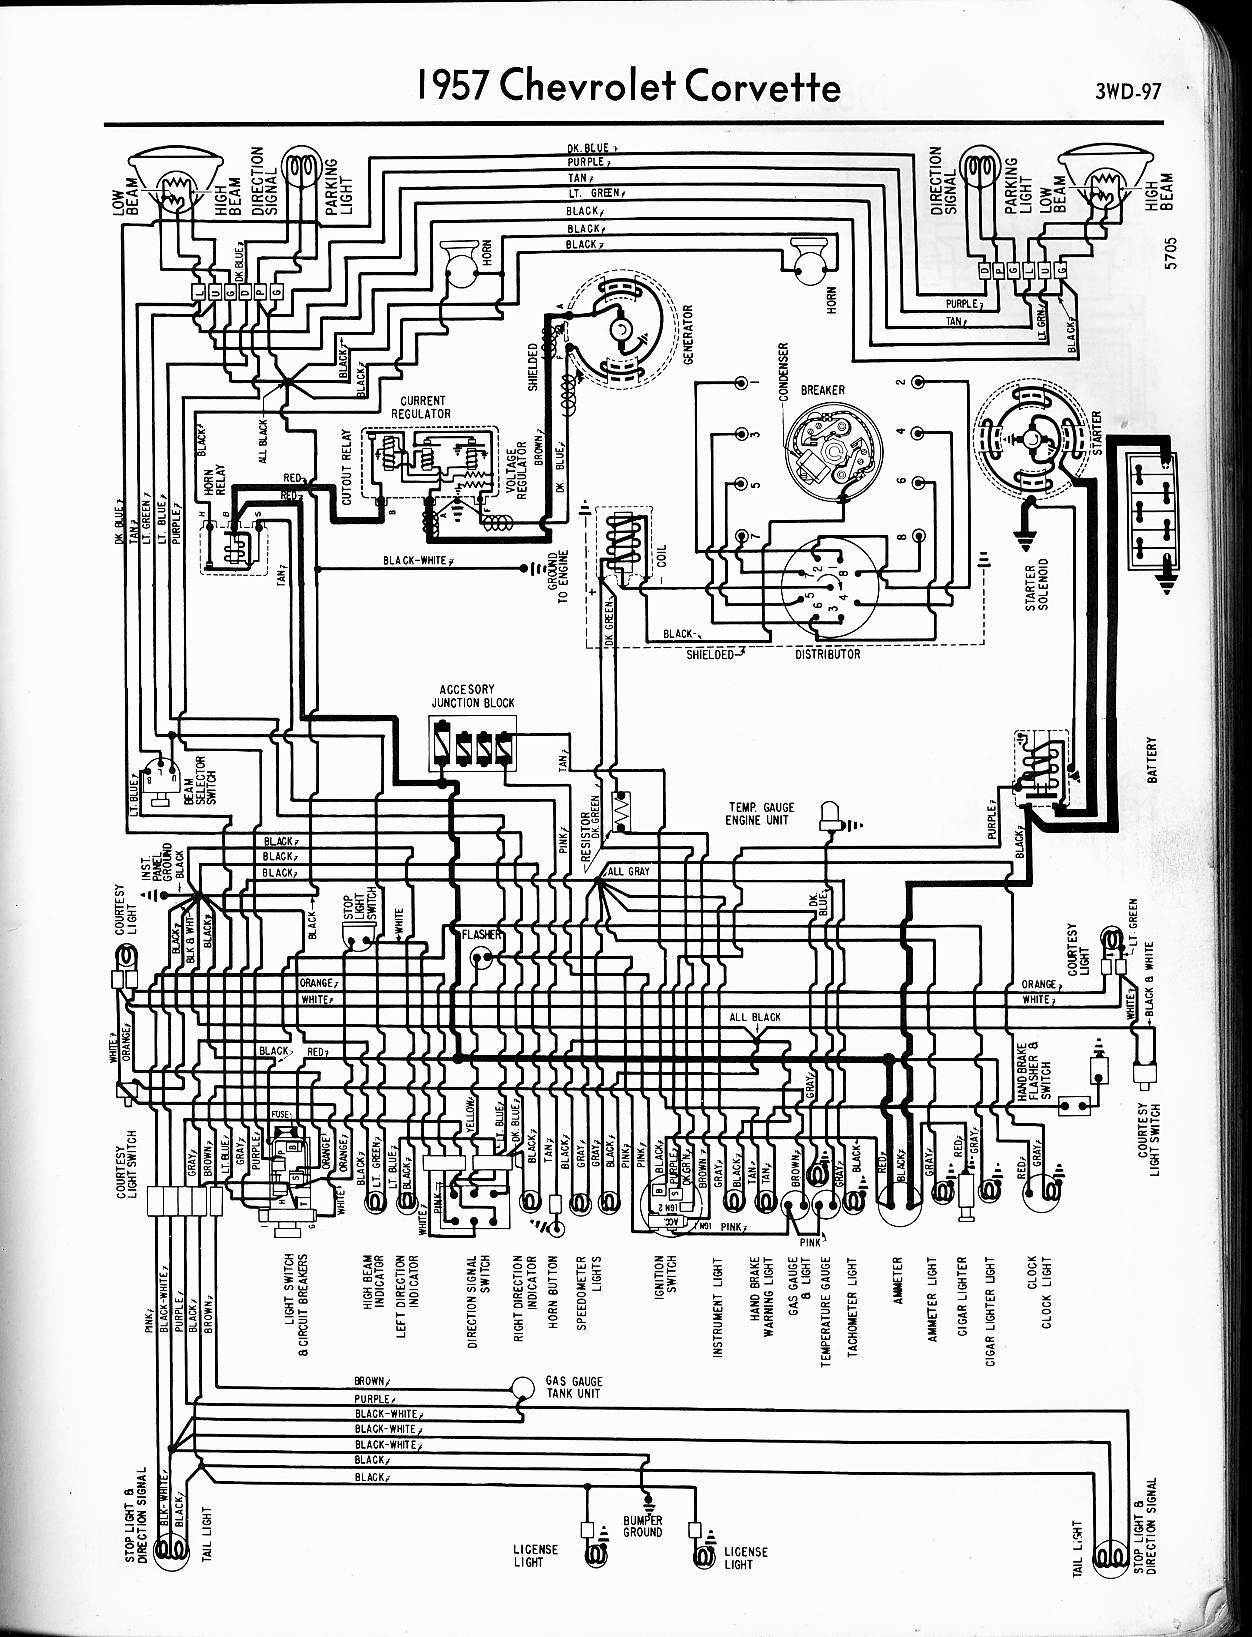 MWireChev57_3WD 097 57 65 chevy wiring diagrams 1957 chevy bel air wiring harness at mifinder.co